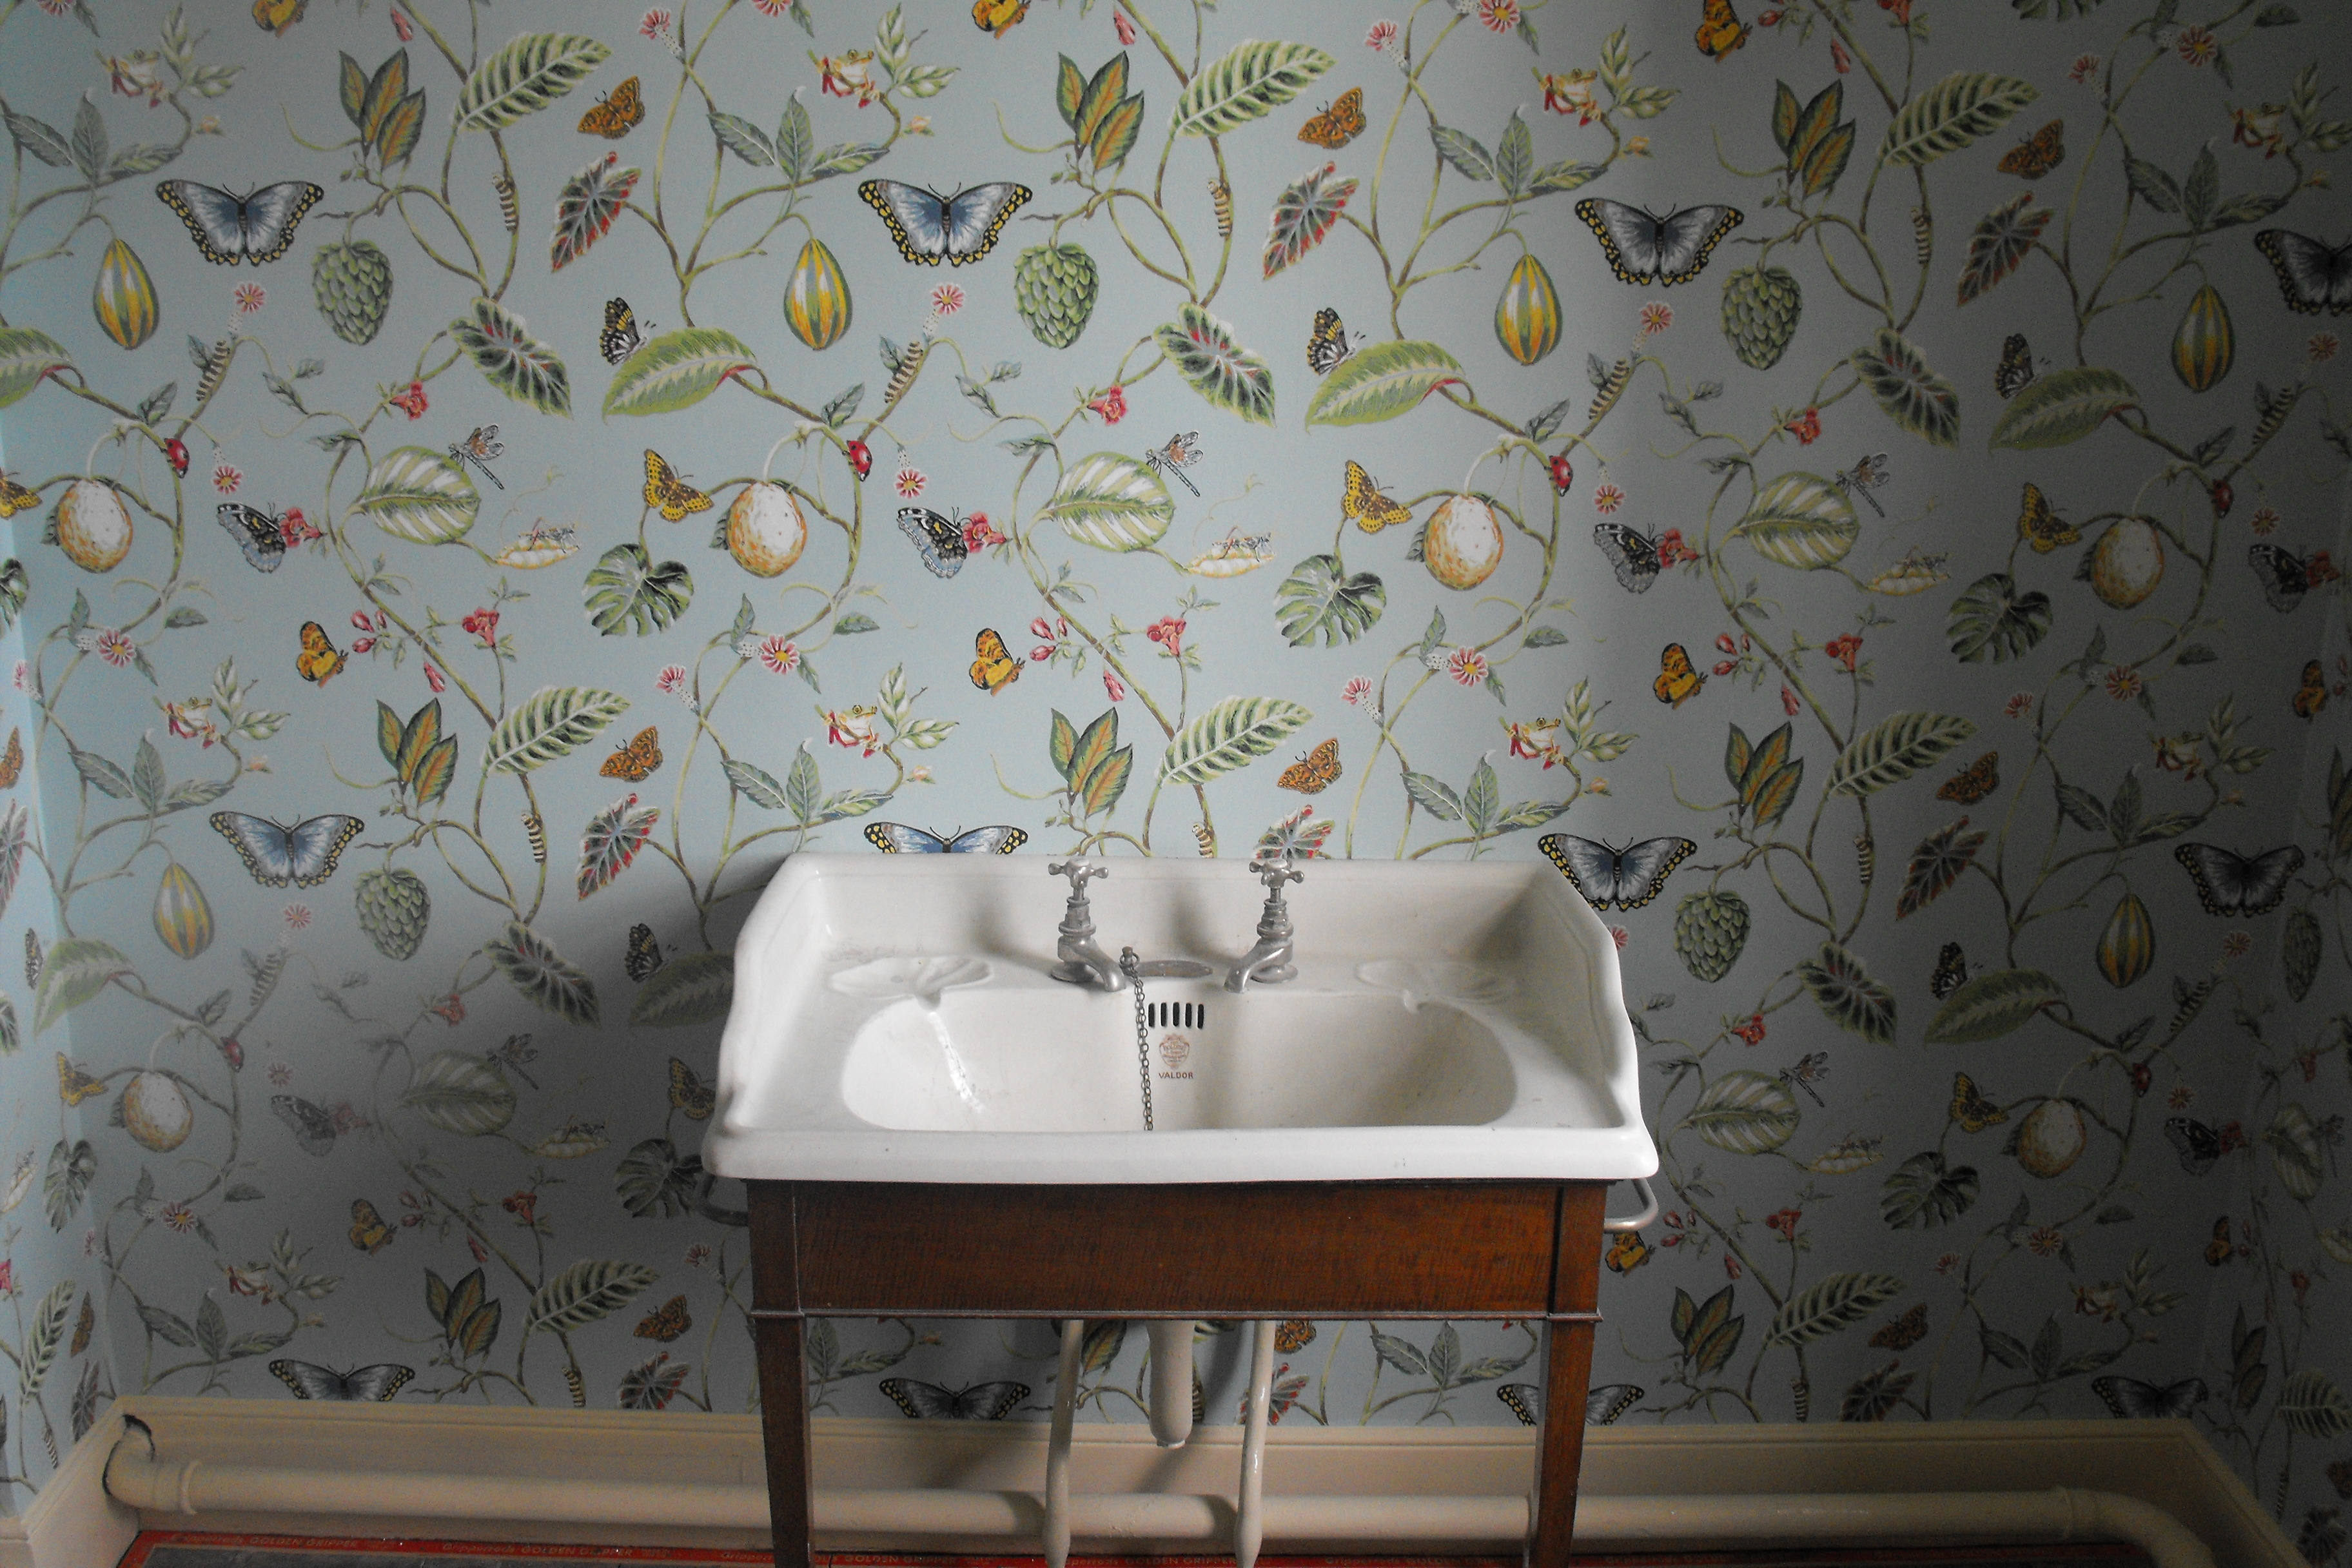 Category repairing a cracked sink the bath businessthe for Vintage bedroom wallpaper